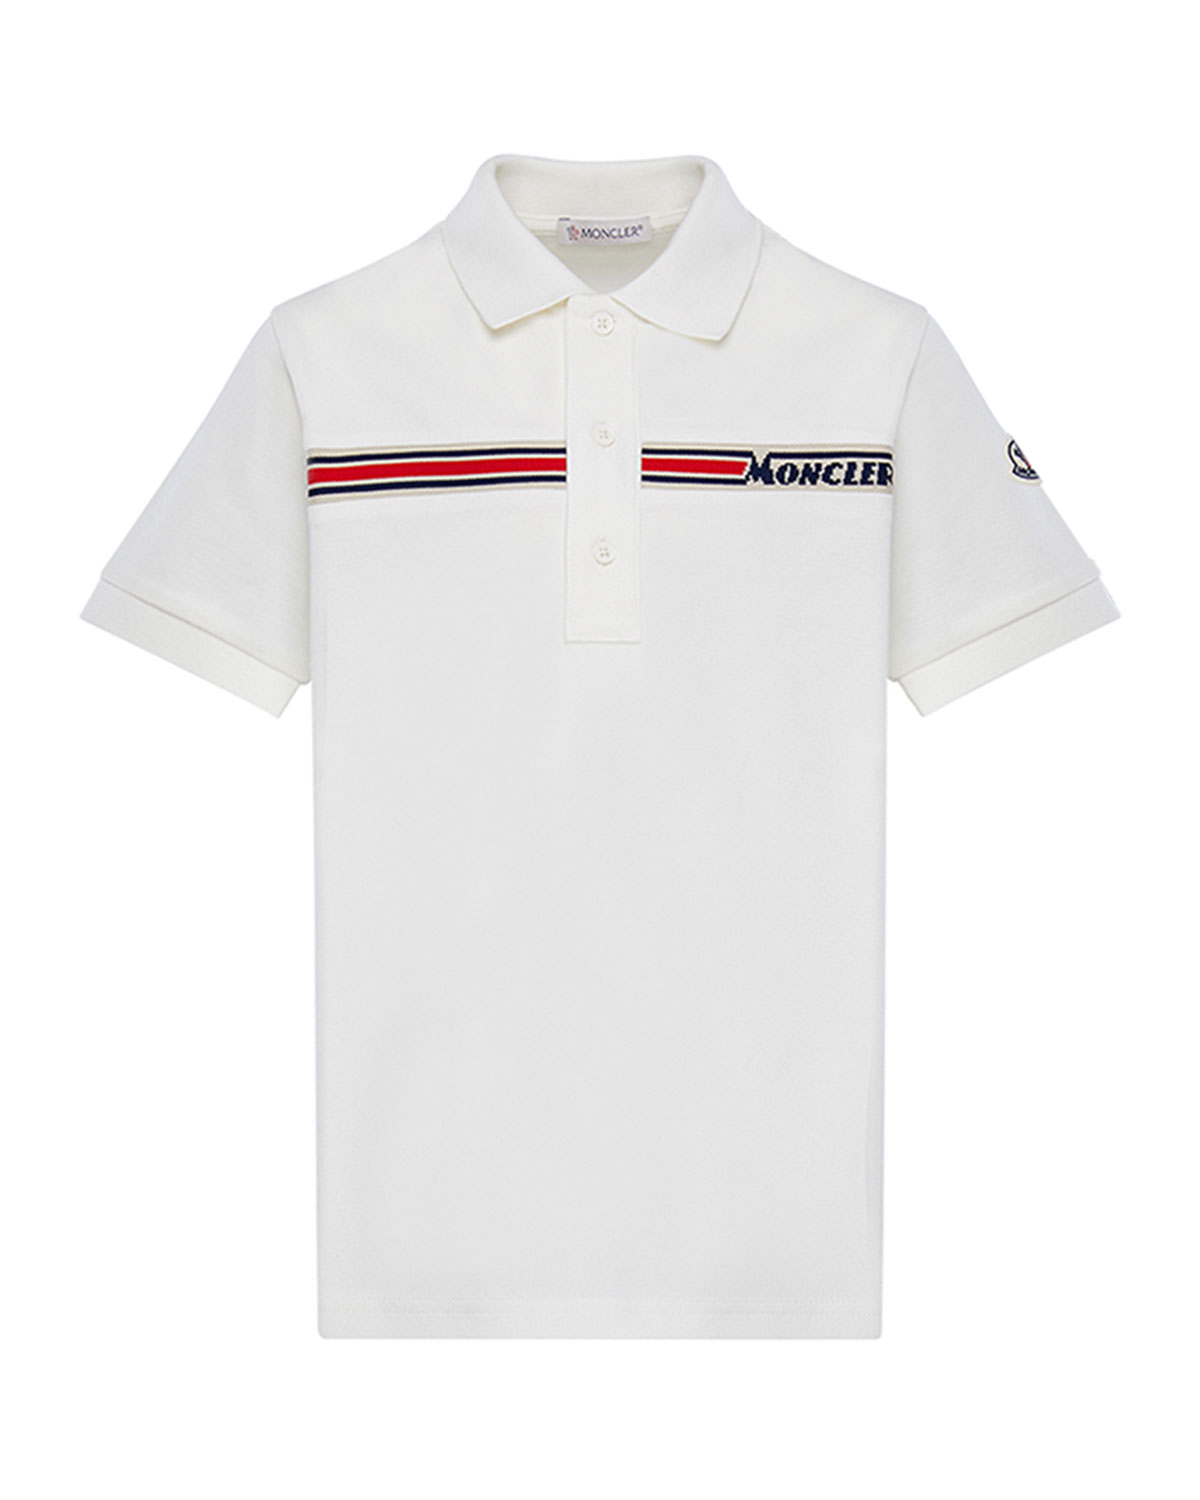 Moncler Boy's Short-Sleeve Logo Polo Shirt, Size 4-6